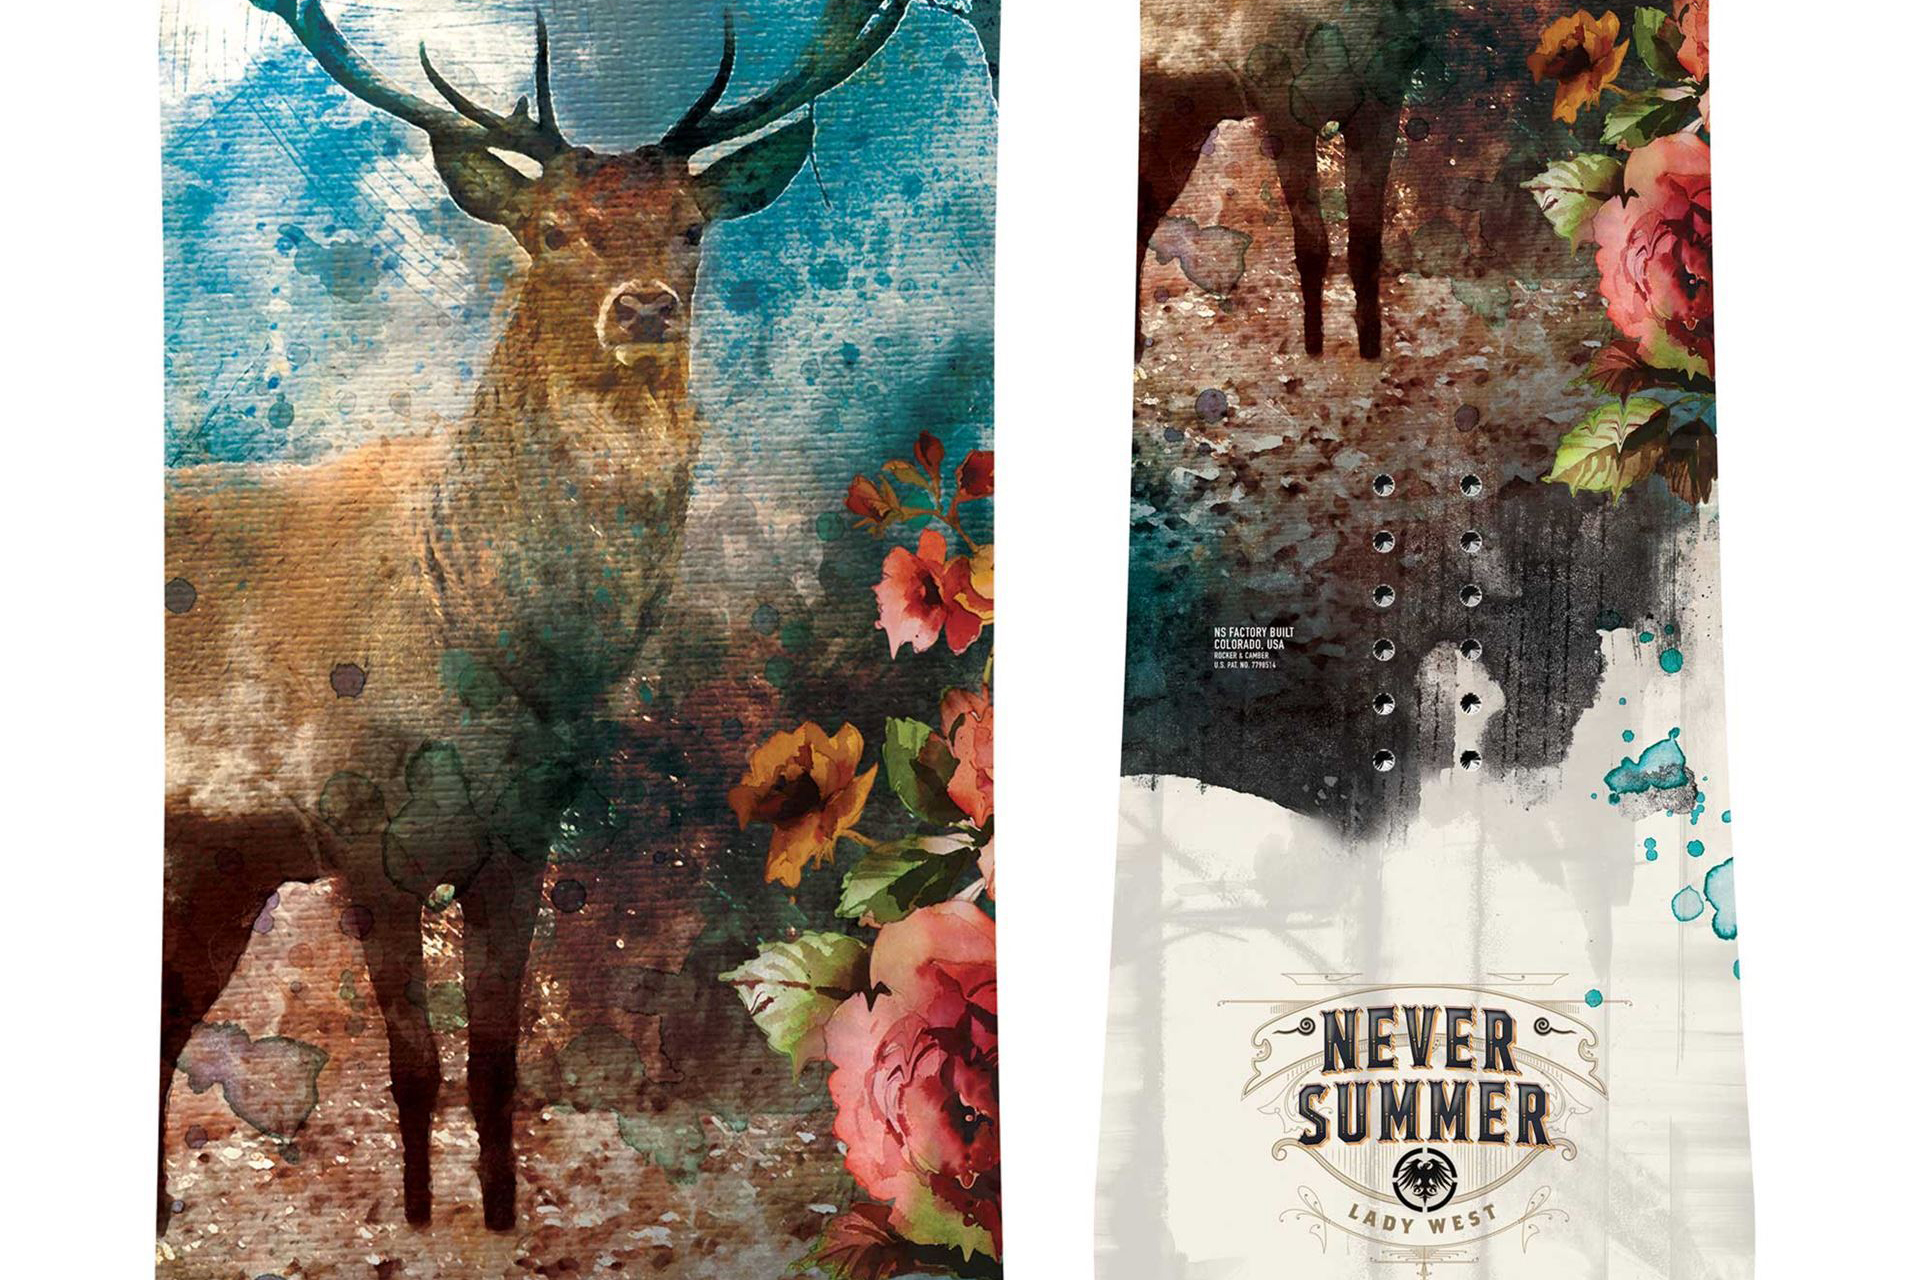 Never Summer Lady West snowboard graphics